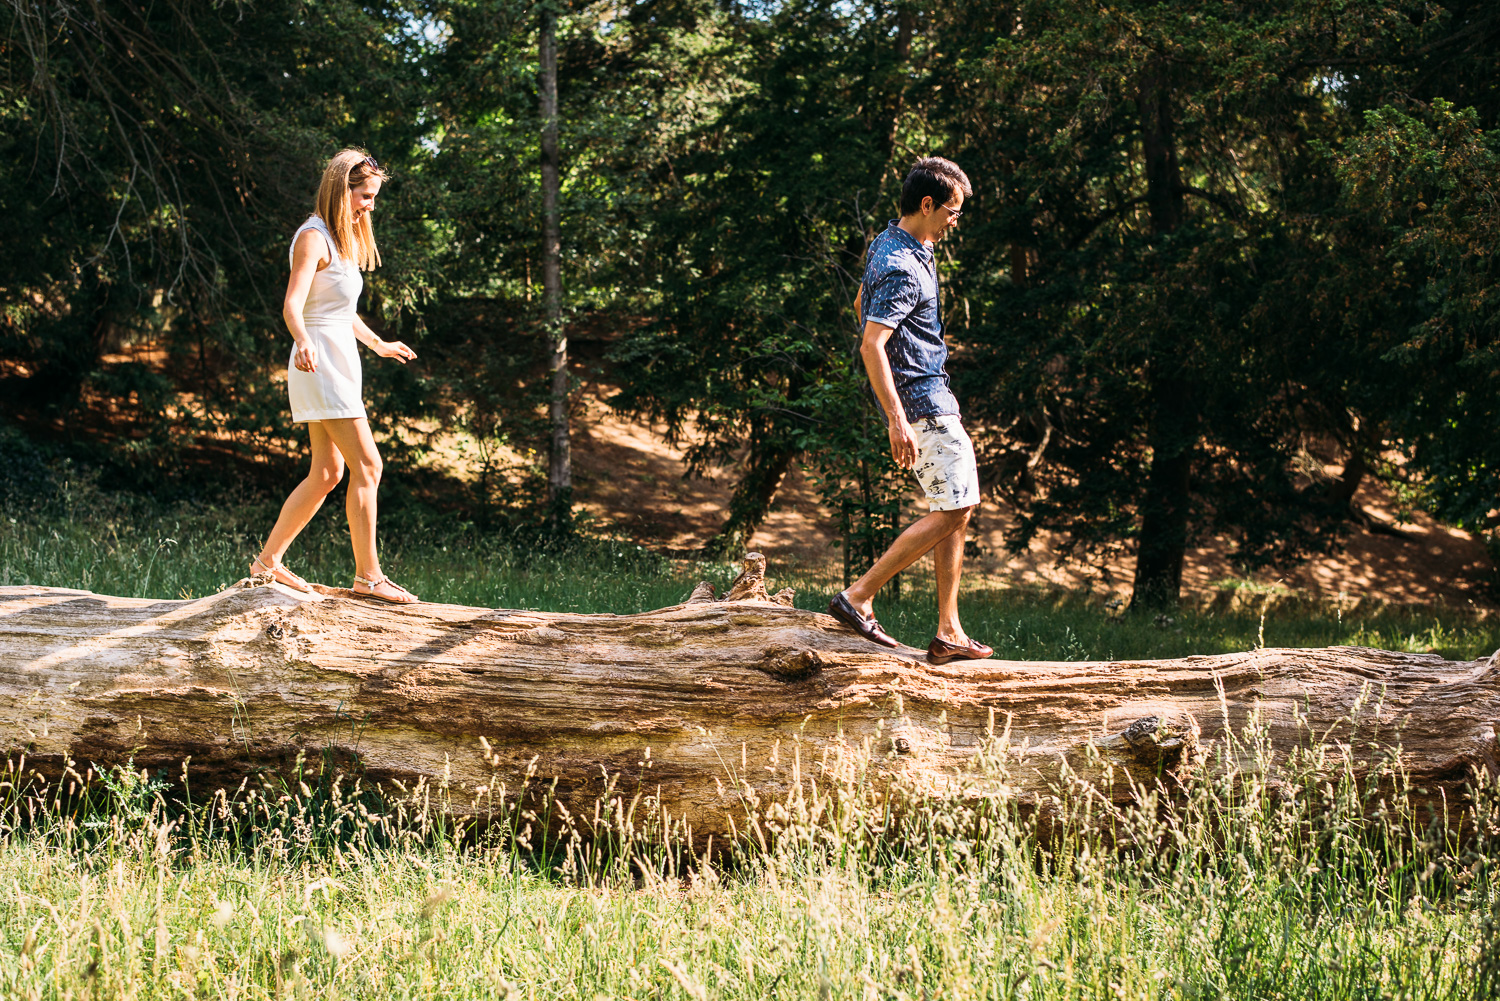 summery-richmond-park-engagement-shoot-45.jpg